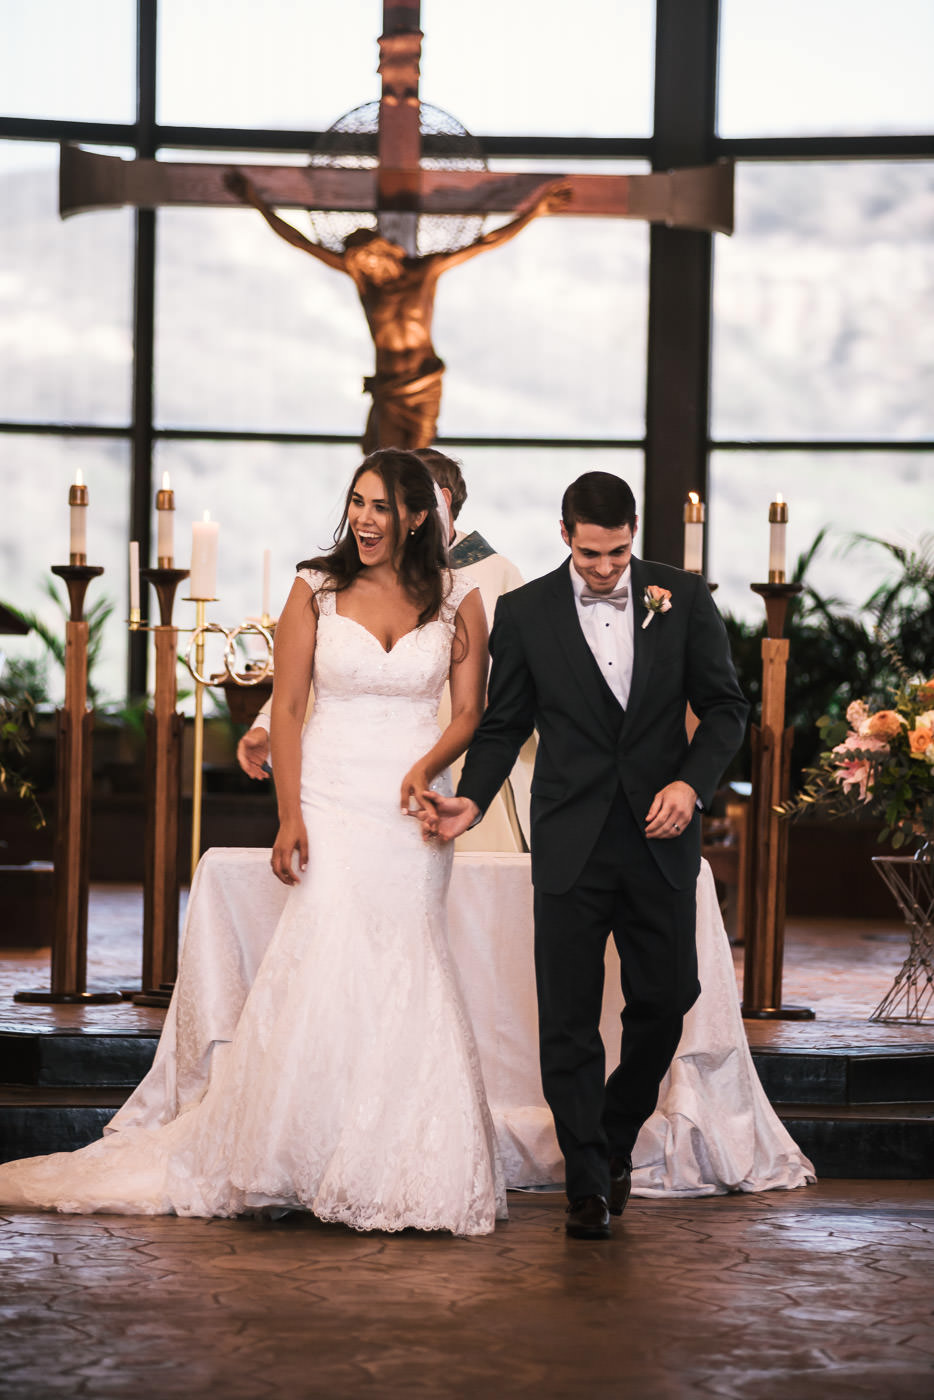 Newlyweds walk down the aisle for the time as husband and wife.